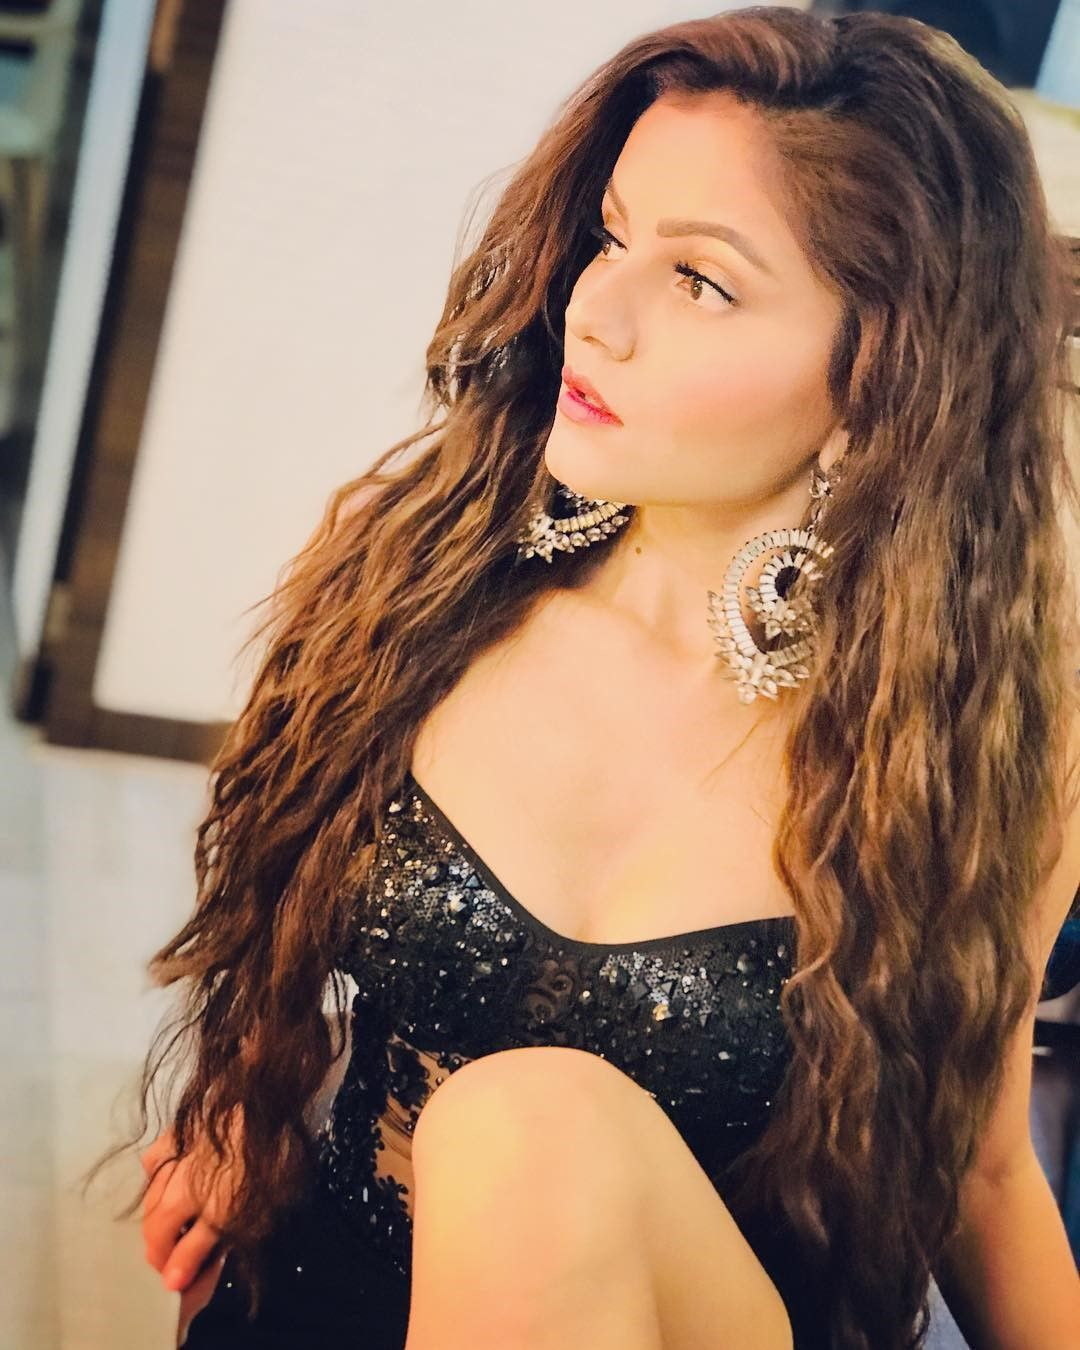 Rubina-Dilaik-hot-photo